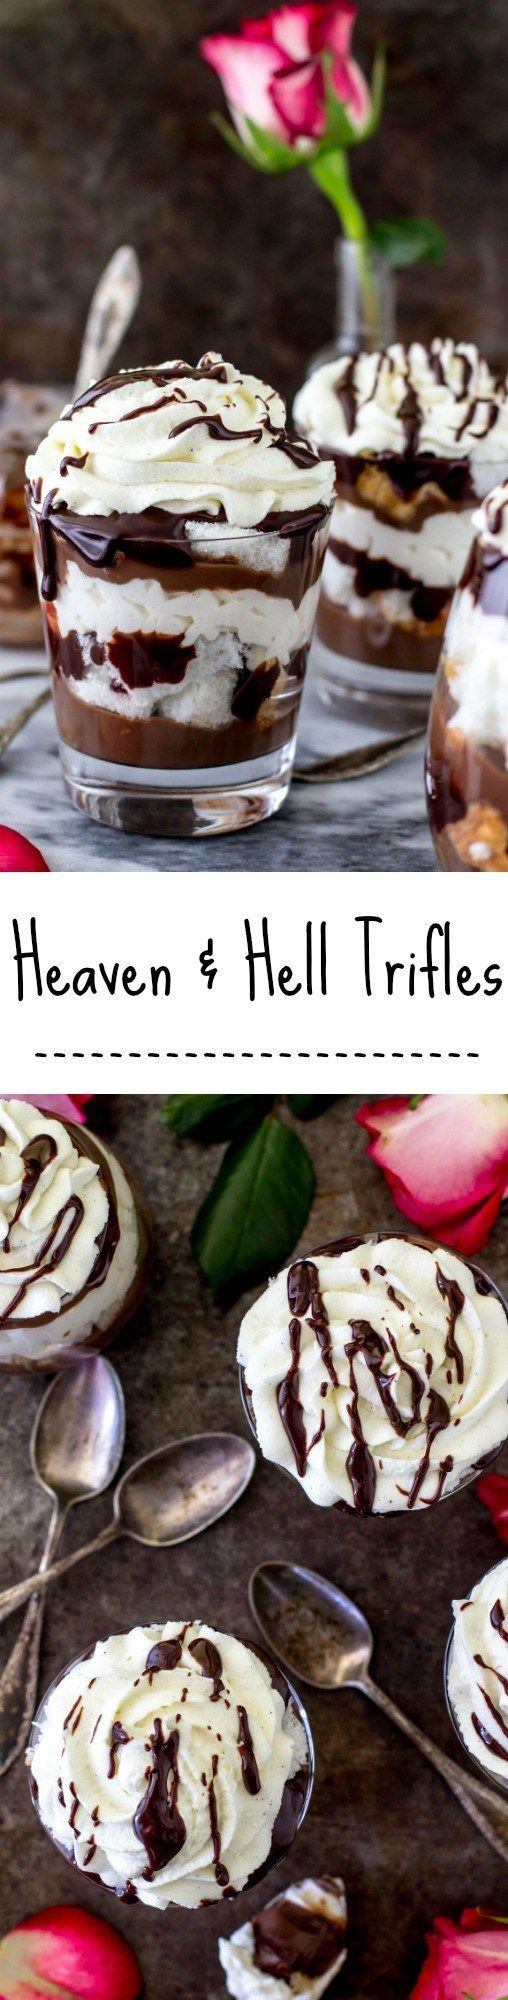 Best 20+ Heaven and hell ideas on Pinterest   Gates of hell, Man ...